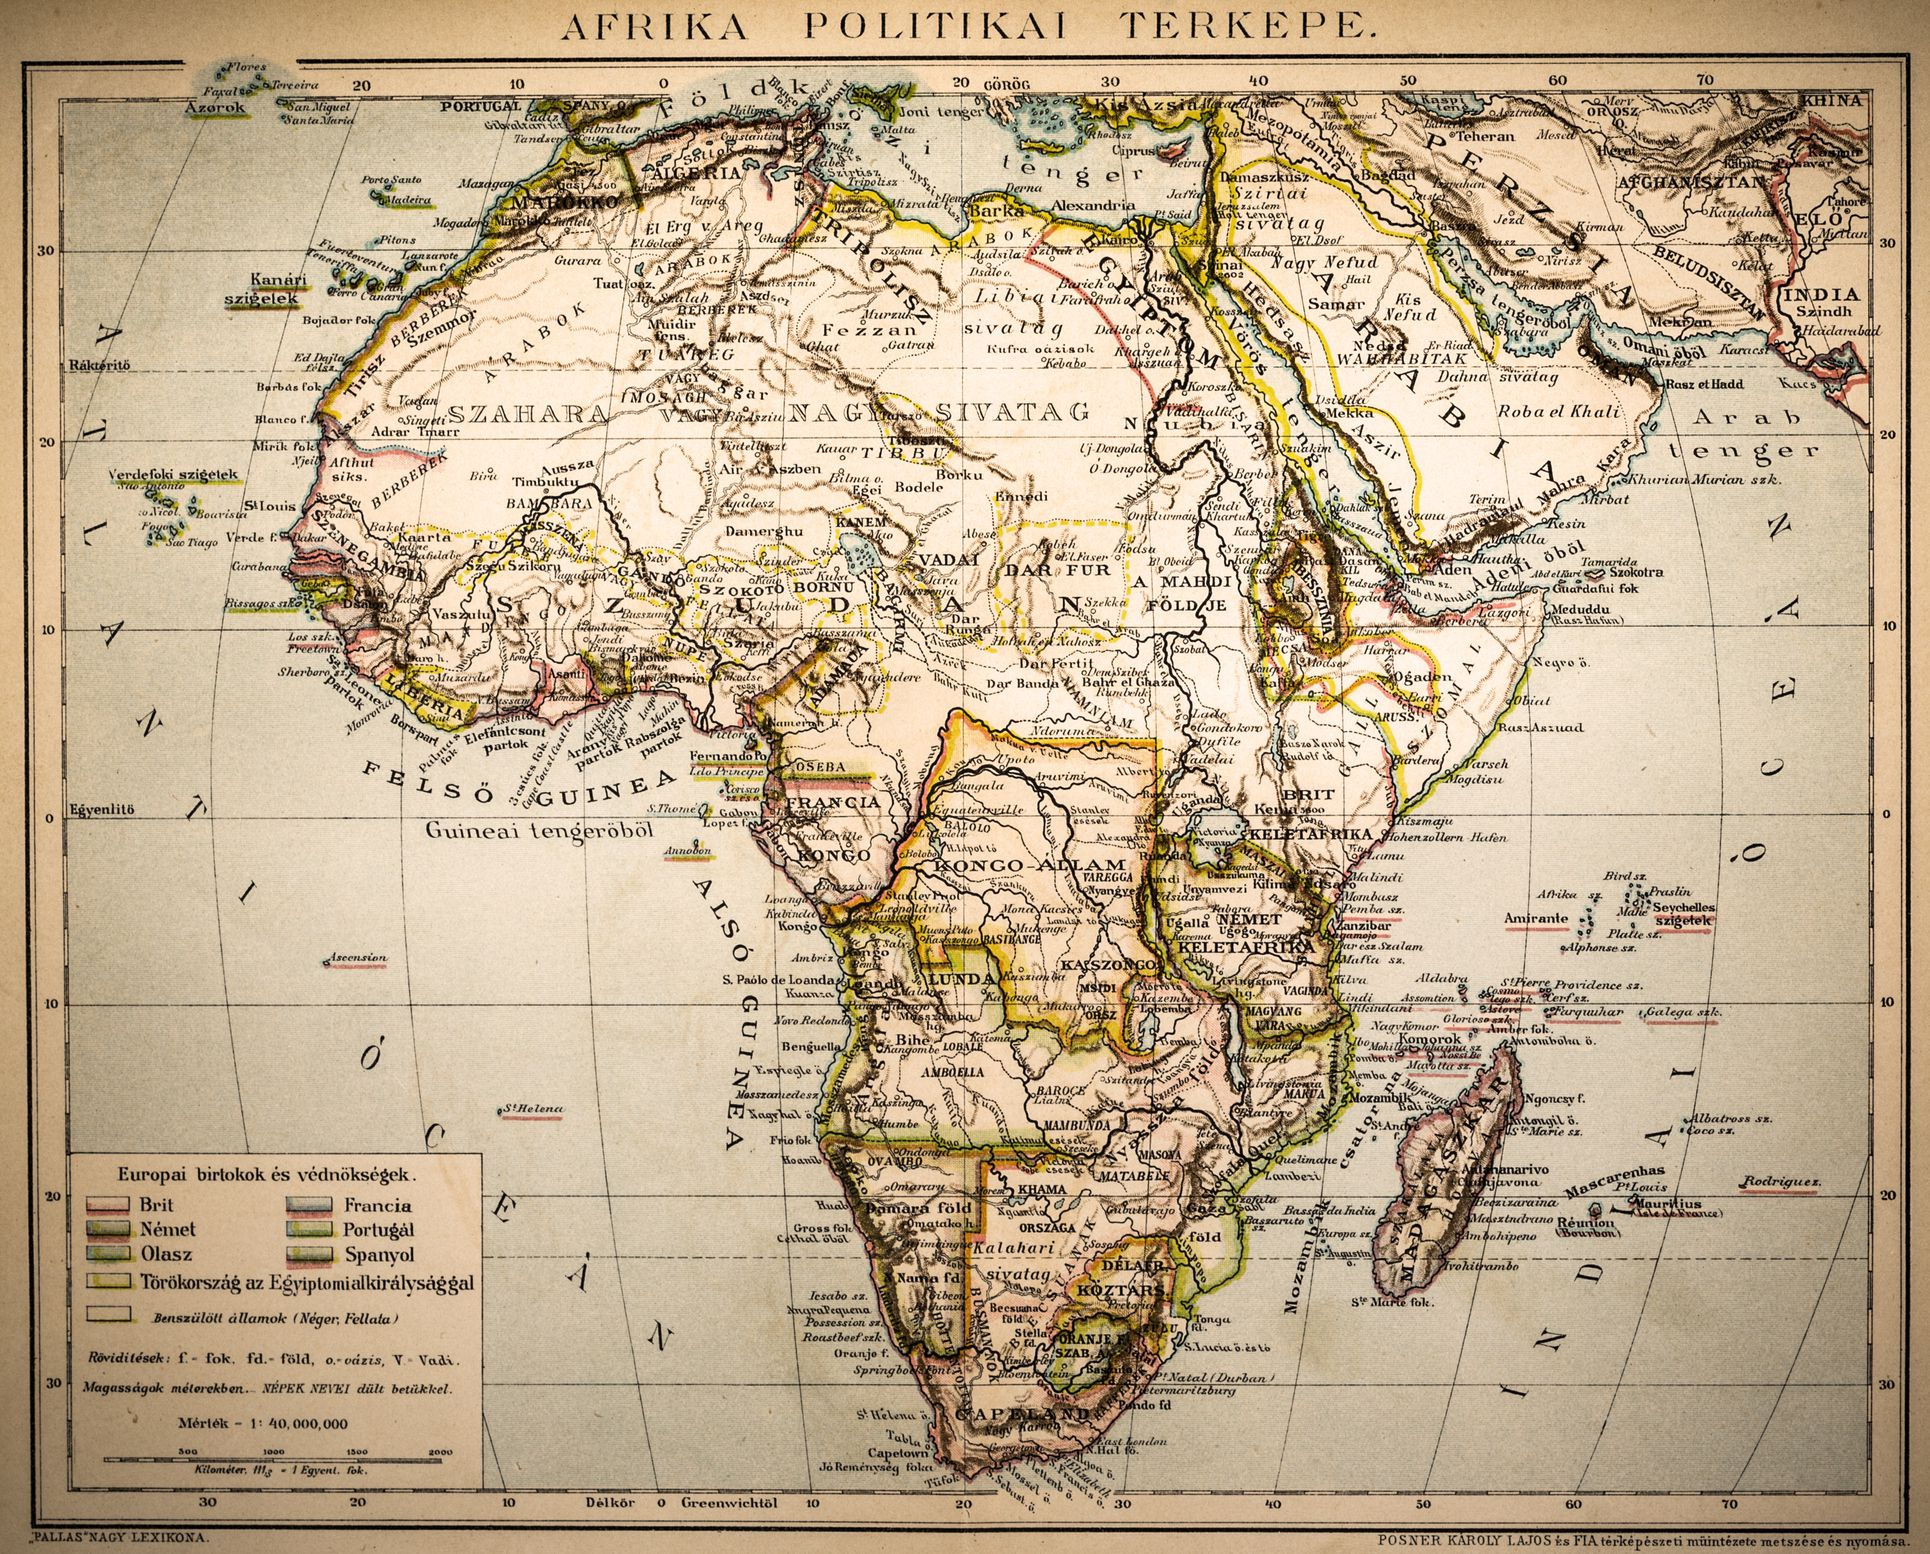 african independence List of all african countries showing independence days from colonial rules these days are now celebrated as national days.